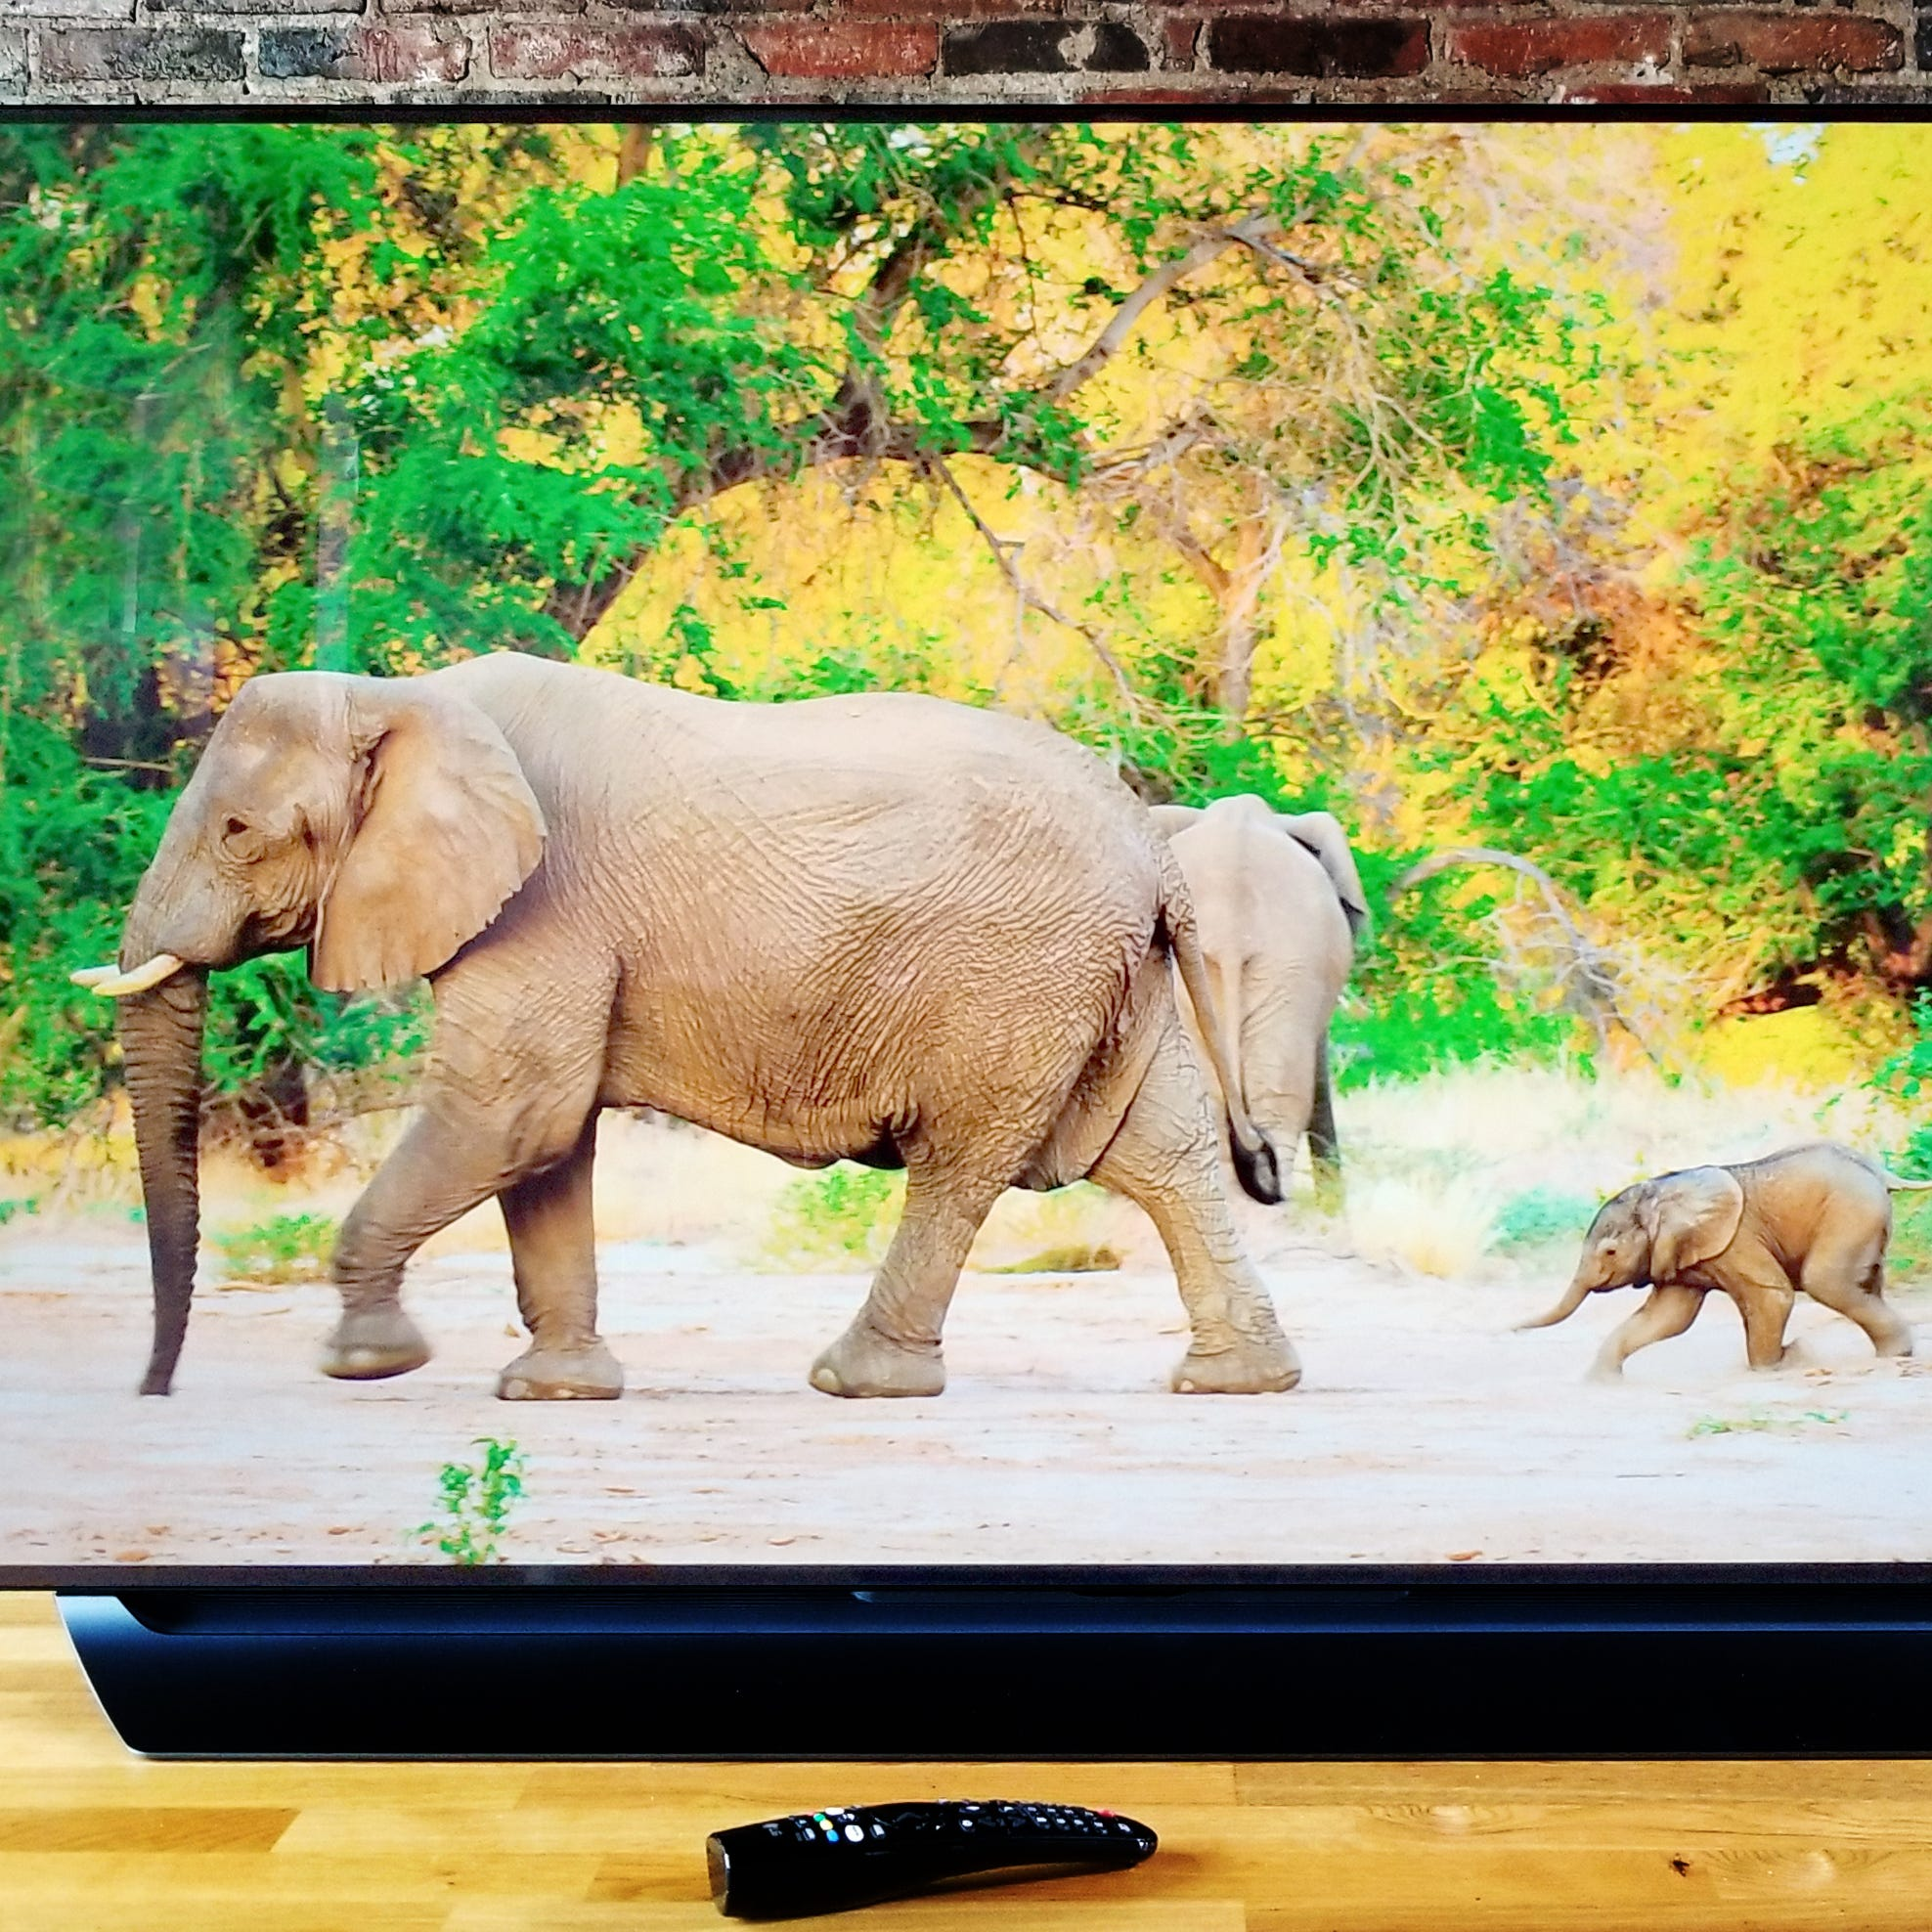 Save big on a refurbished LG C8 OLED TV at Walmart.